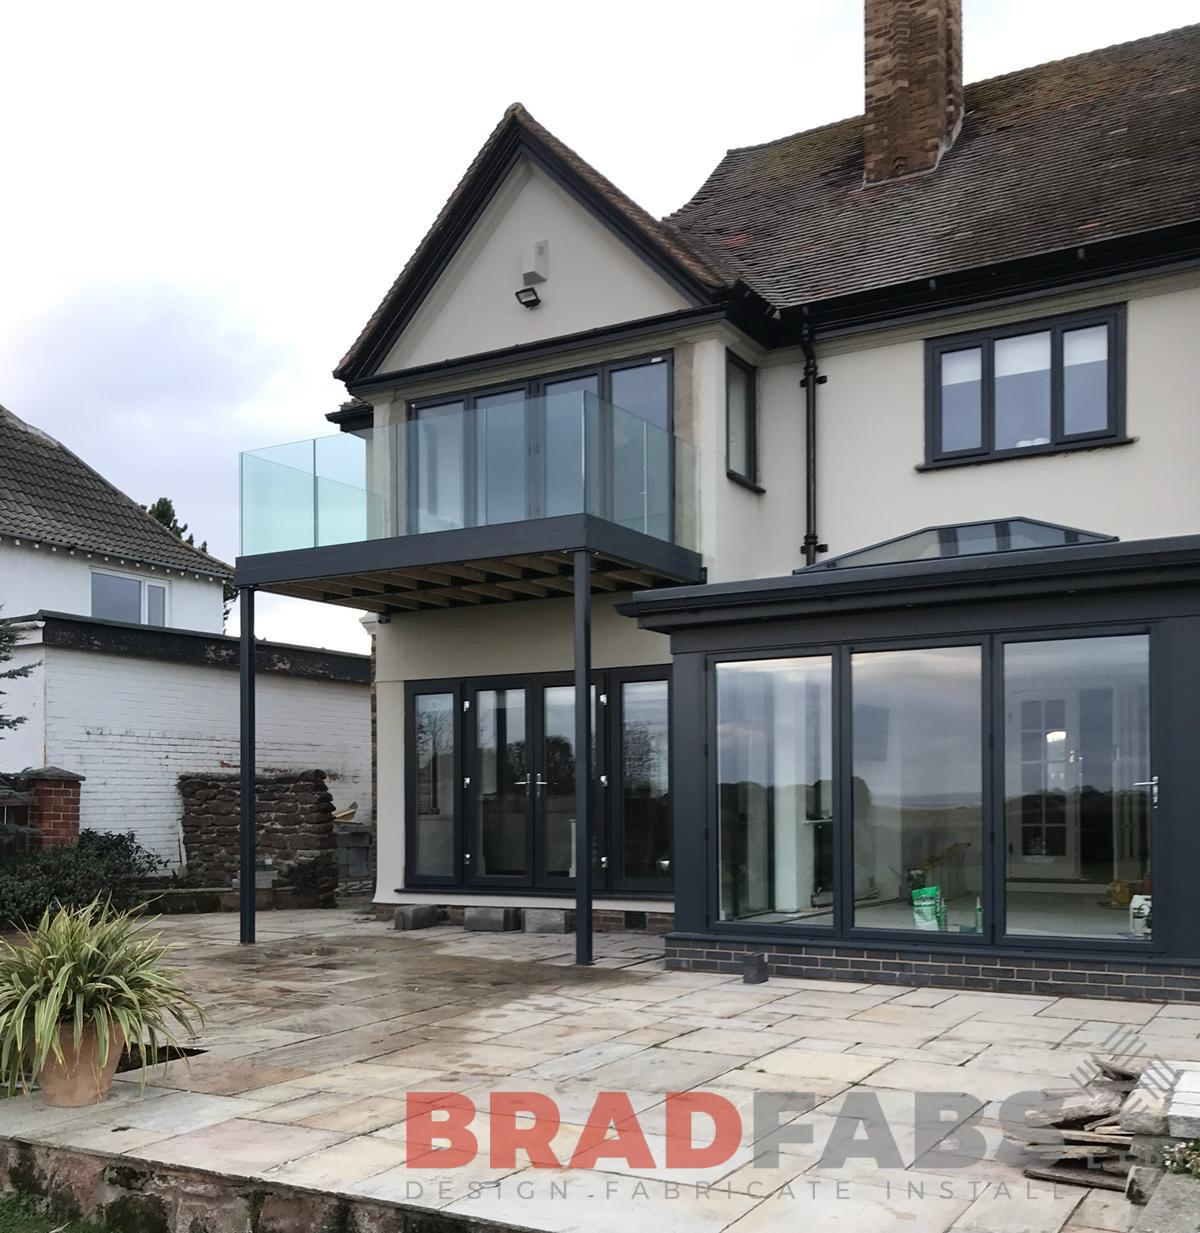 Bespoke Infinity glass and steel balcony by Bradfabs